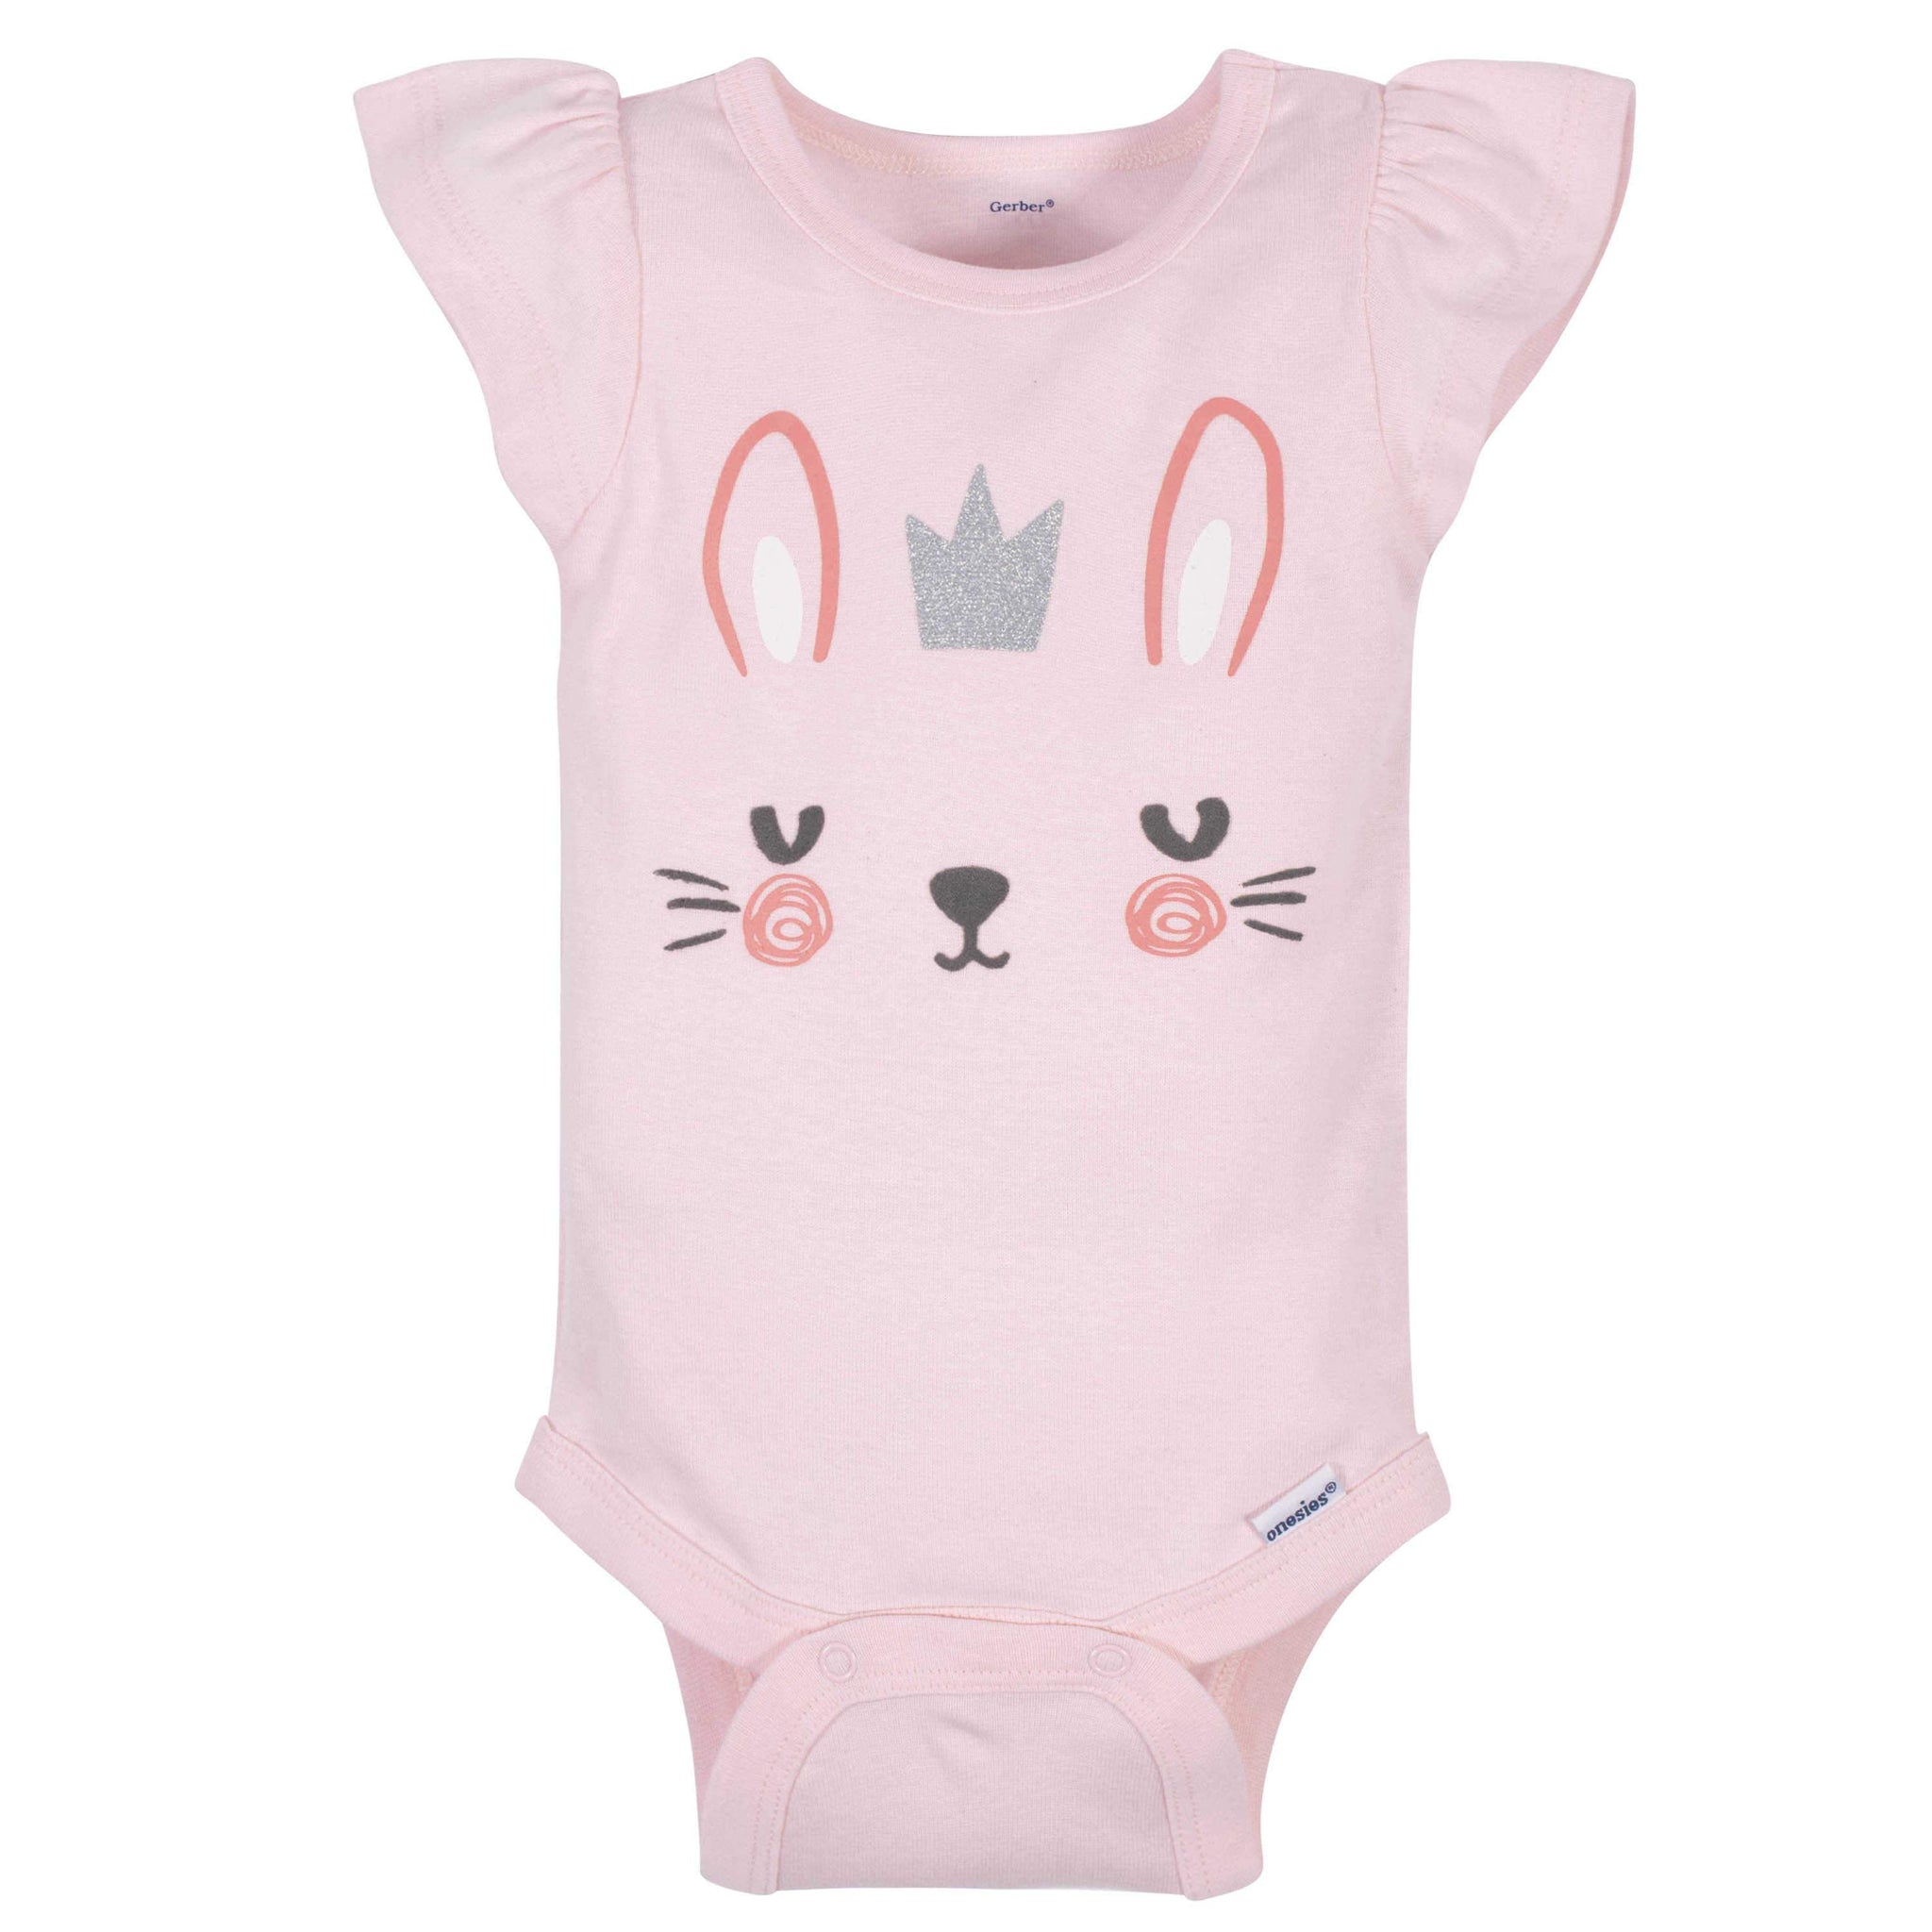 Gerber® 4-Pack Baby Girls Bunny Short Sleeve Onesies Bodysuits